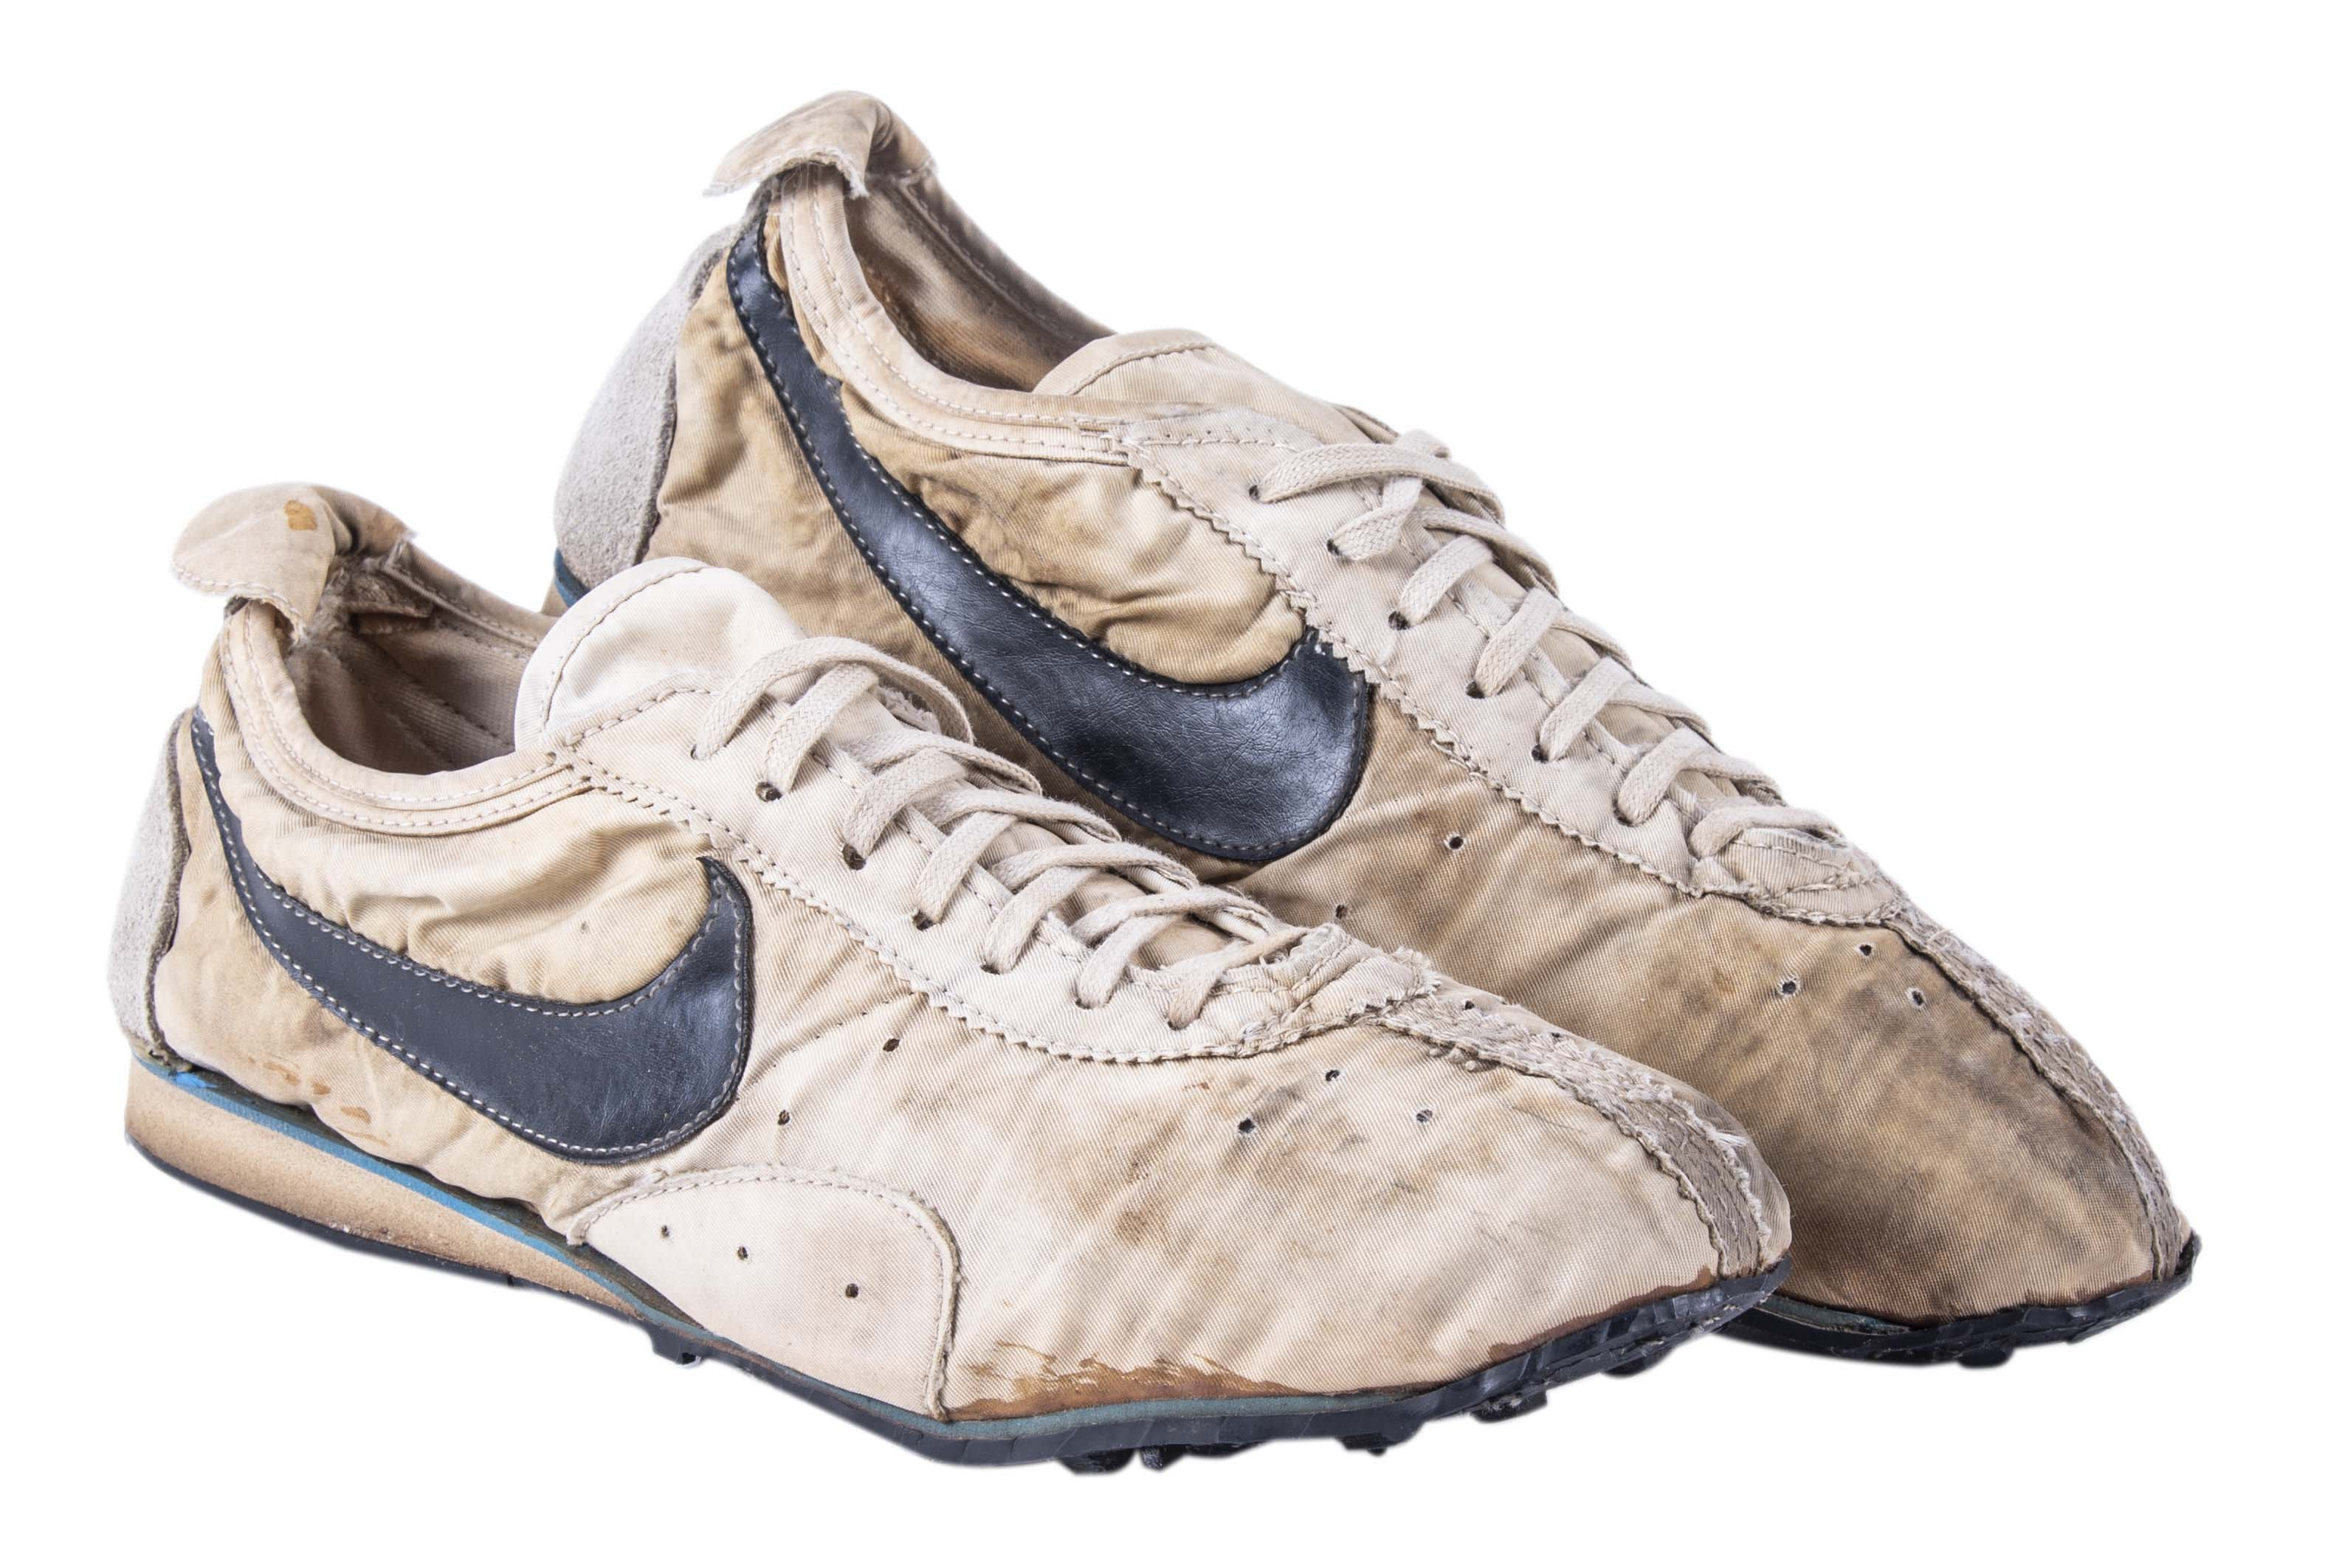 nike-moon-shoes-goldin-auctions-side